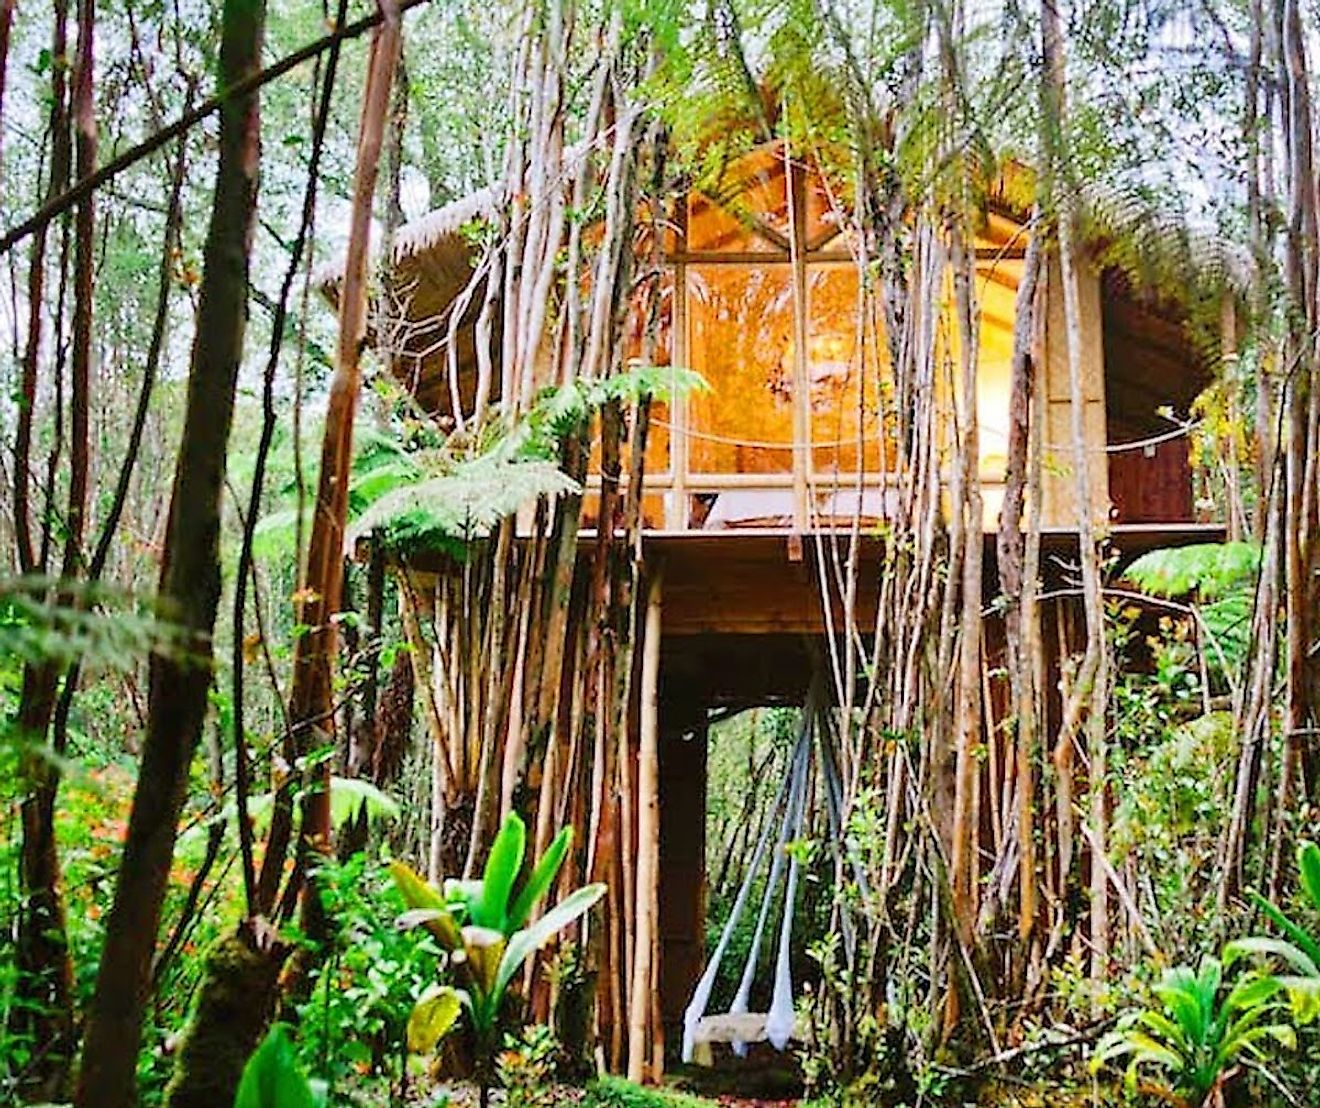 Dreamy Tropical Treehouse, Hawaii. Image credit: www.airbnb.co.in